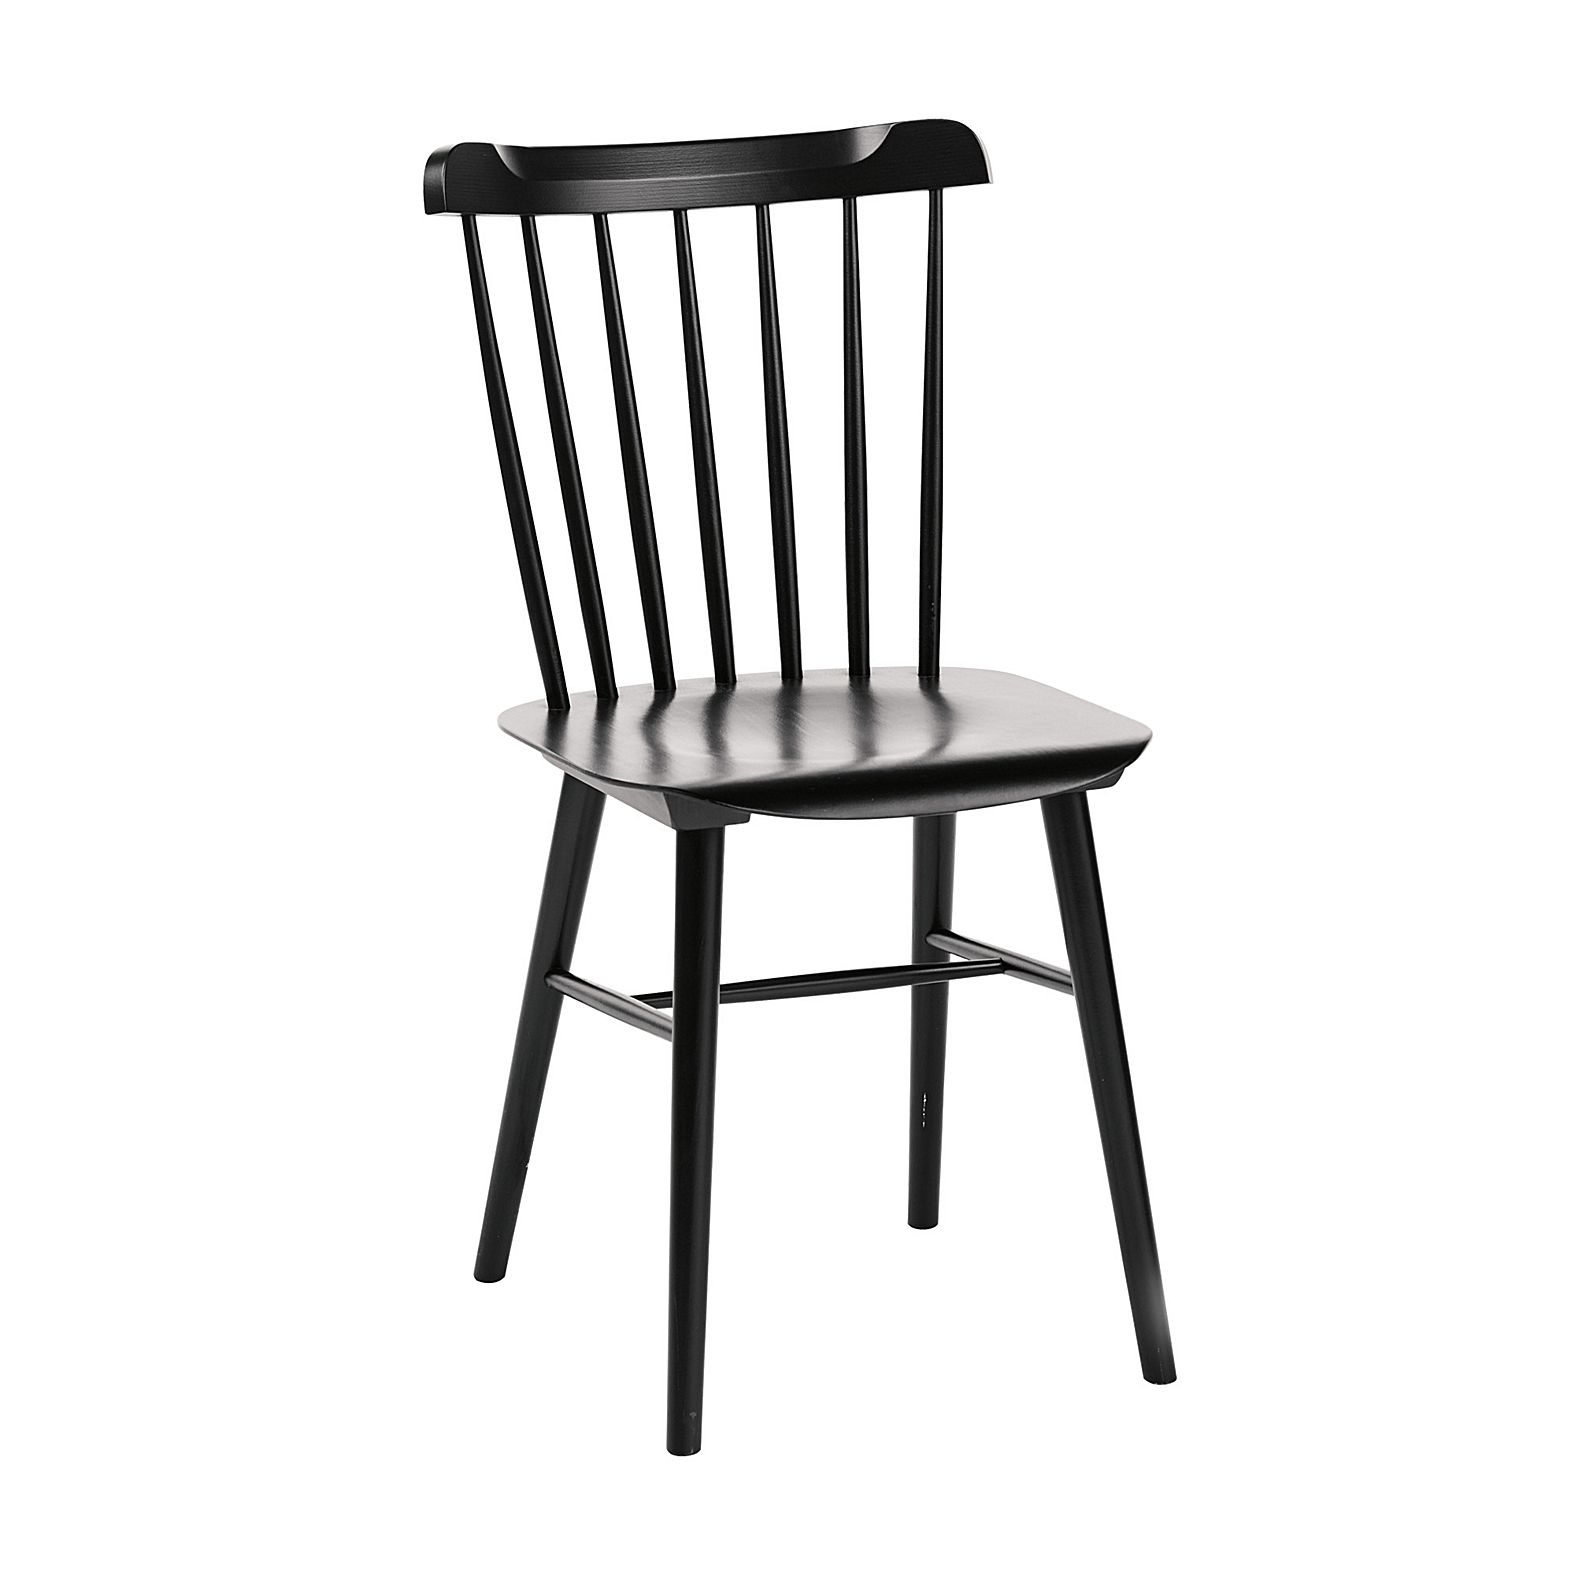 Salt Chair Tucker Chair Black Serena And Lily Desk Chair Or Dwr